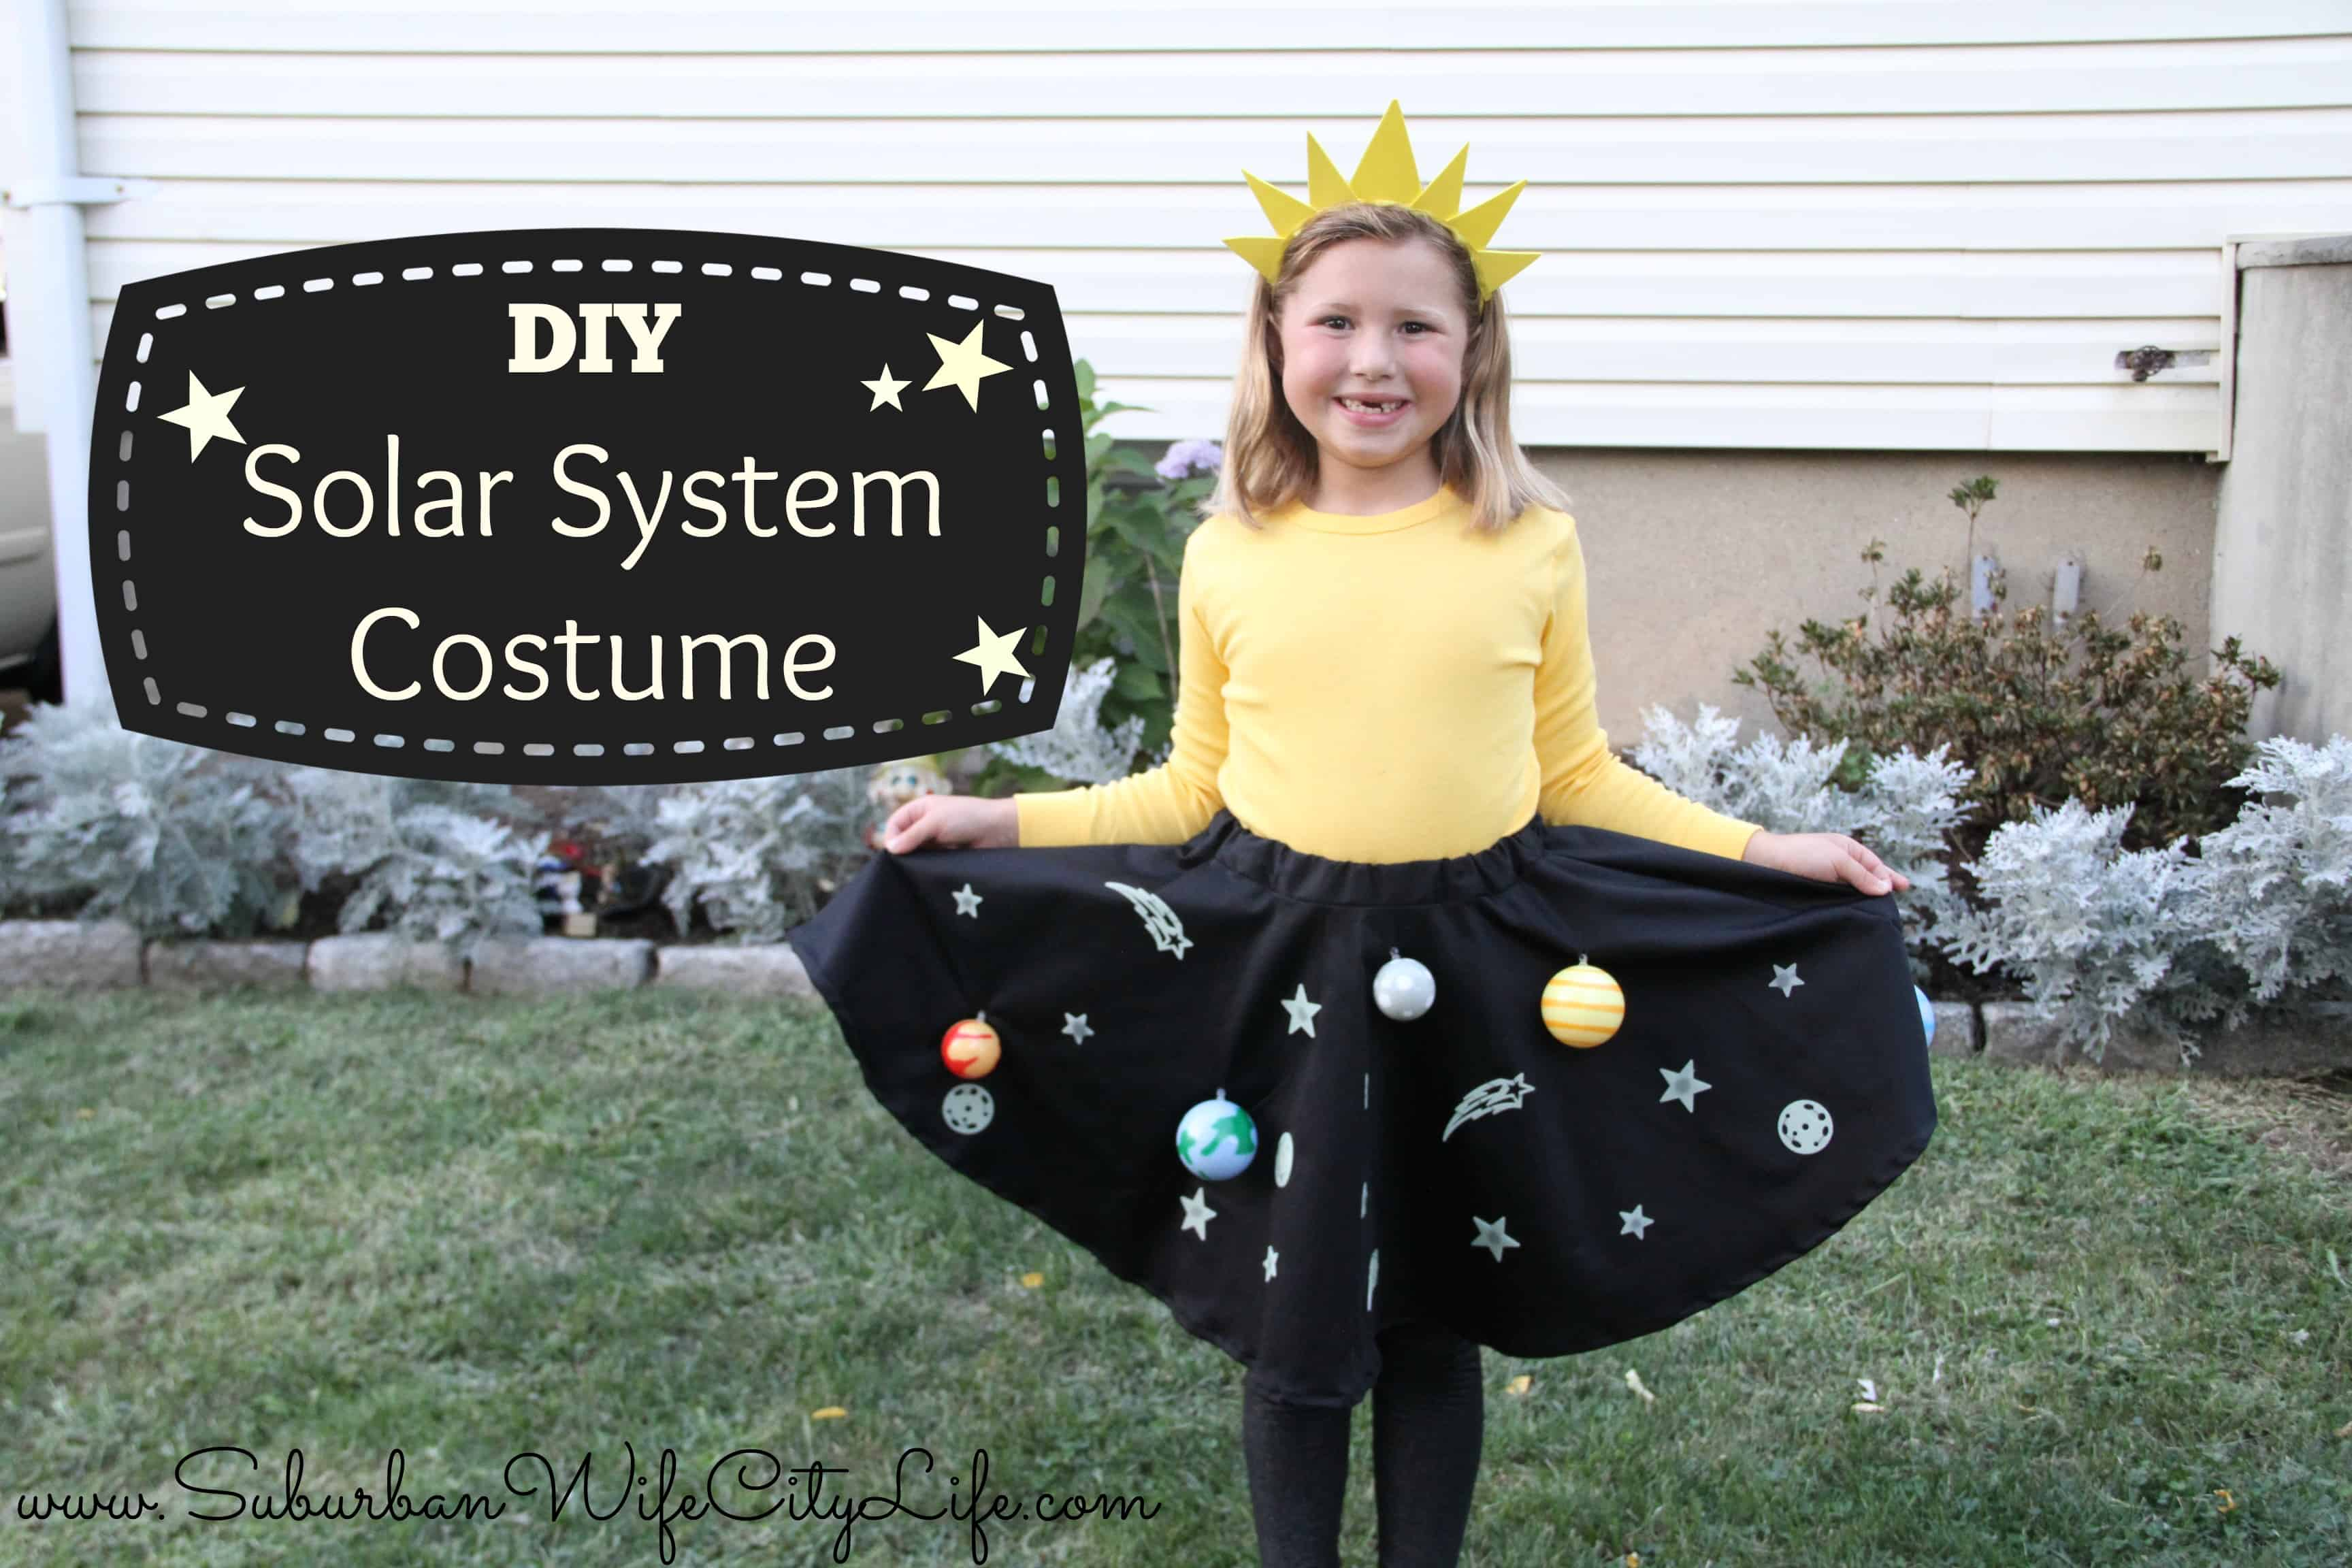 sexy solar system costume - photo #14